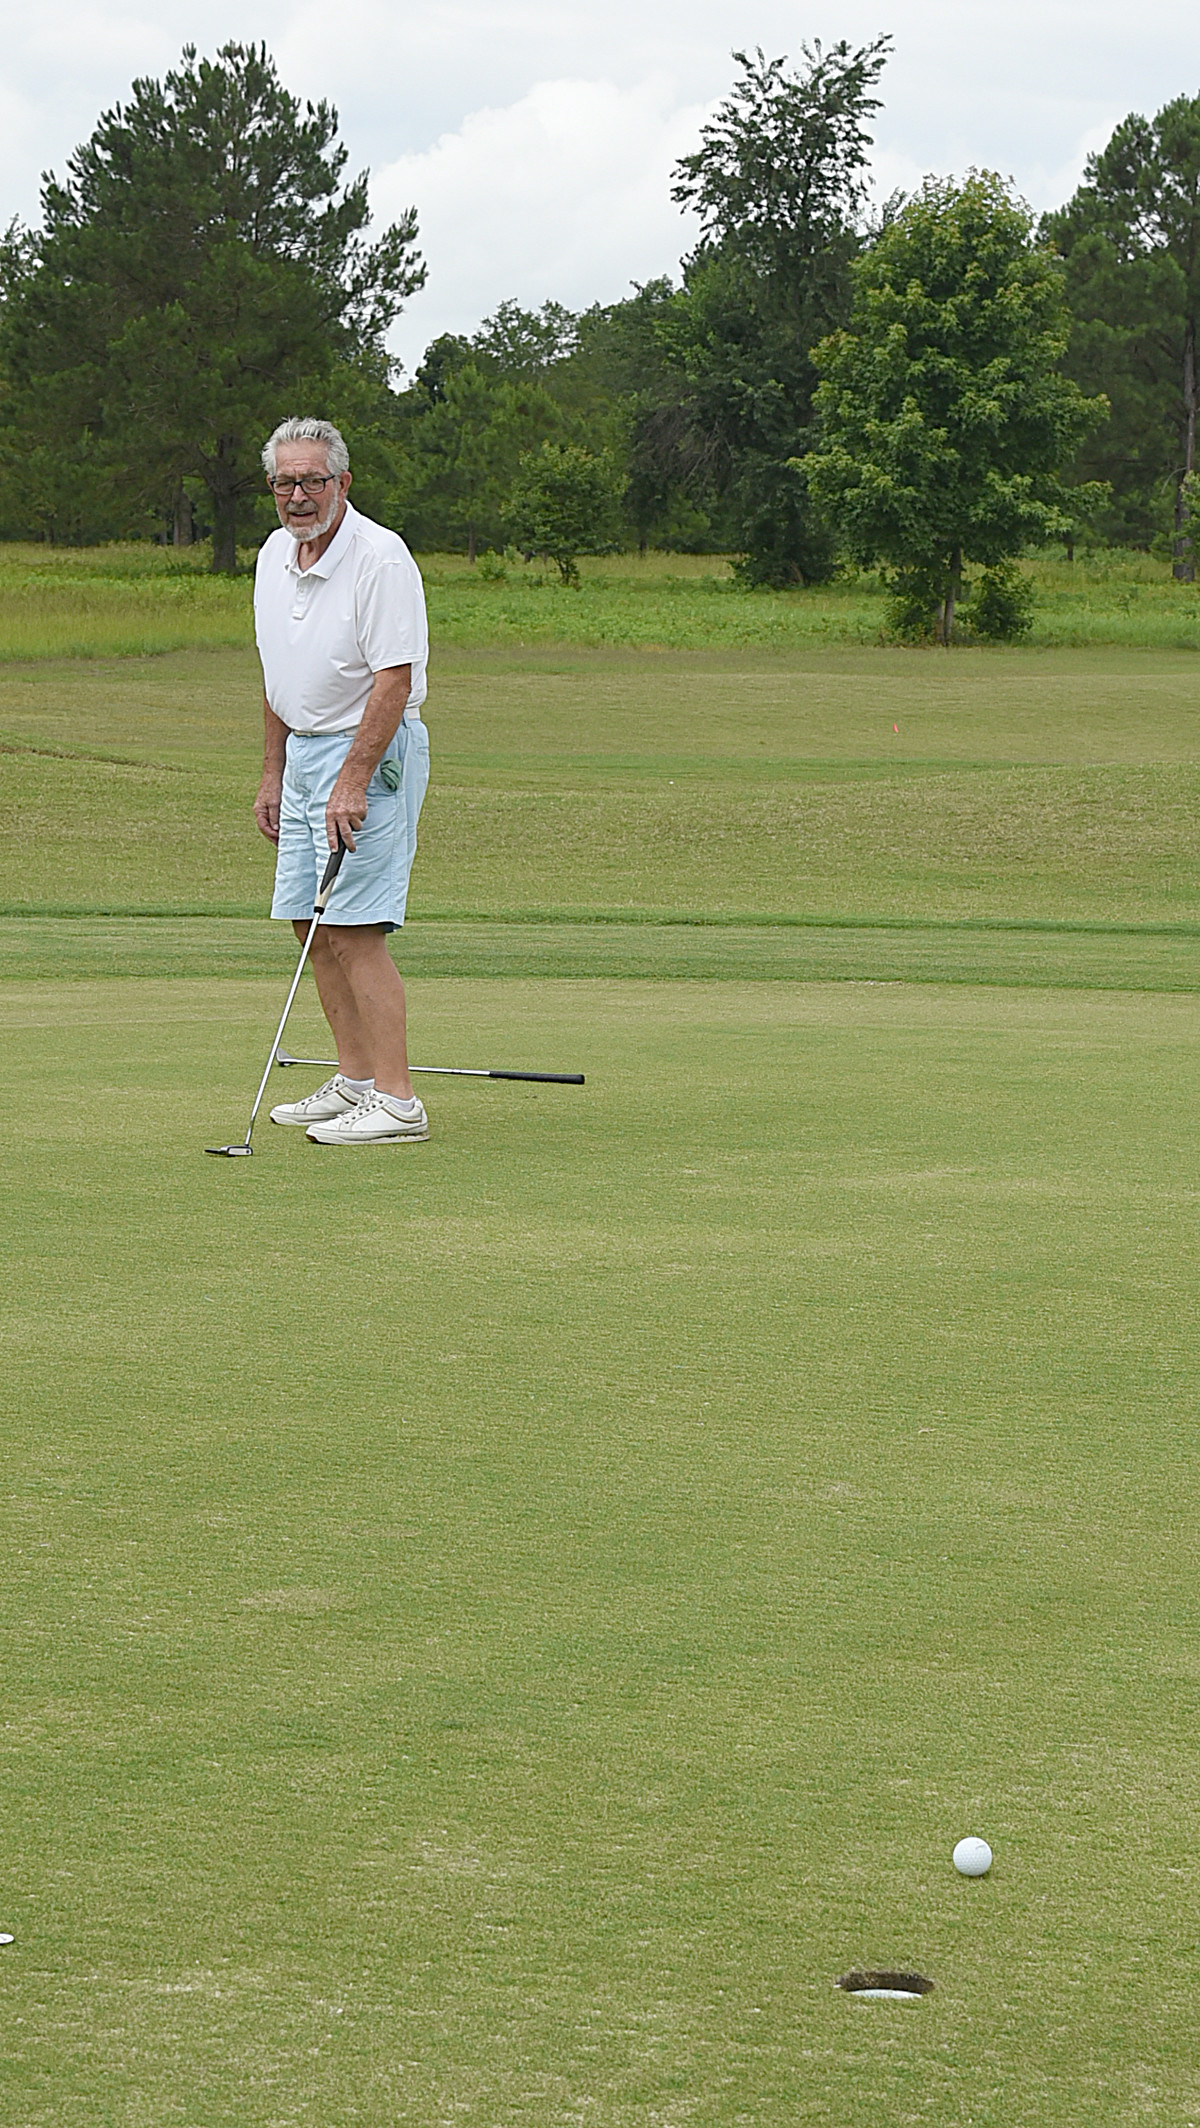 Jack Henson watches a long putt Friday at Wyboo Golf Club near Manning. A housing development called Deercreek at Wyboo offers homes for sale along the fairways.